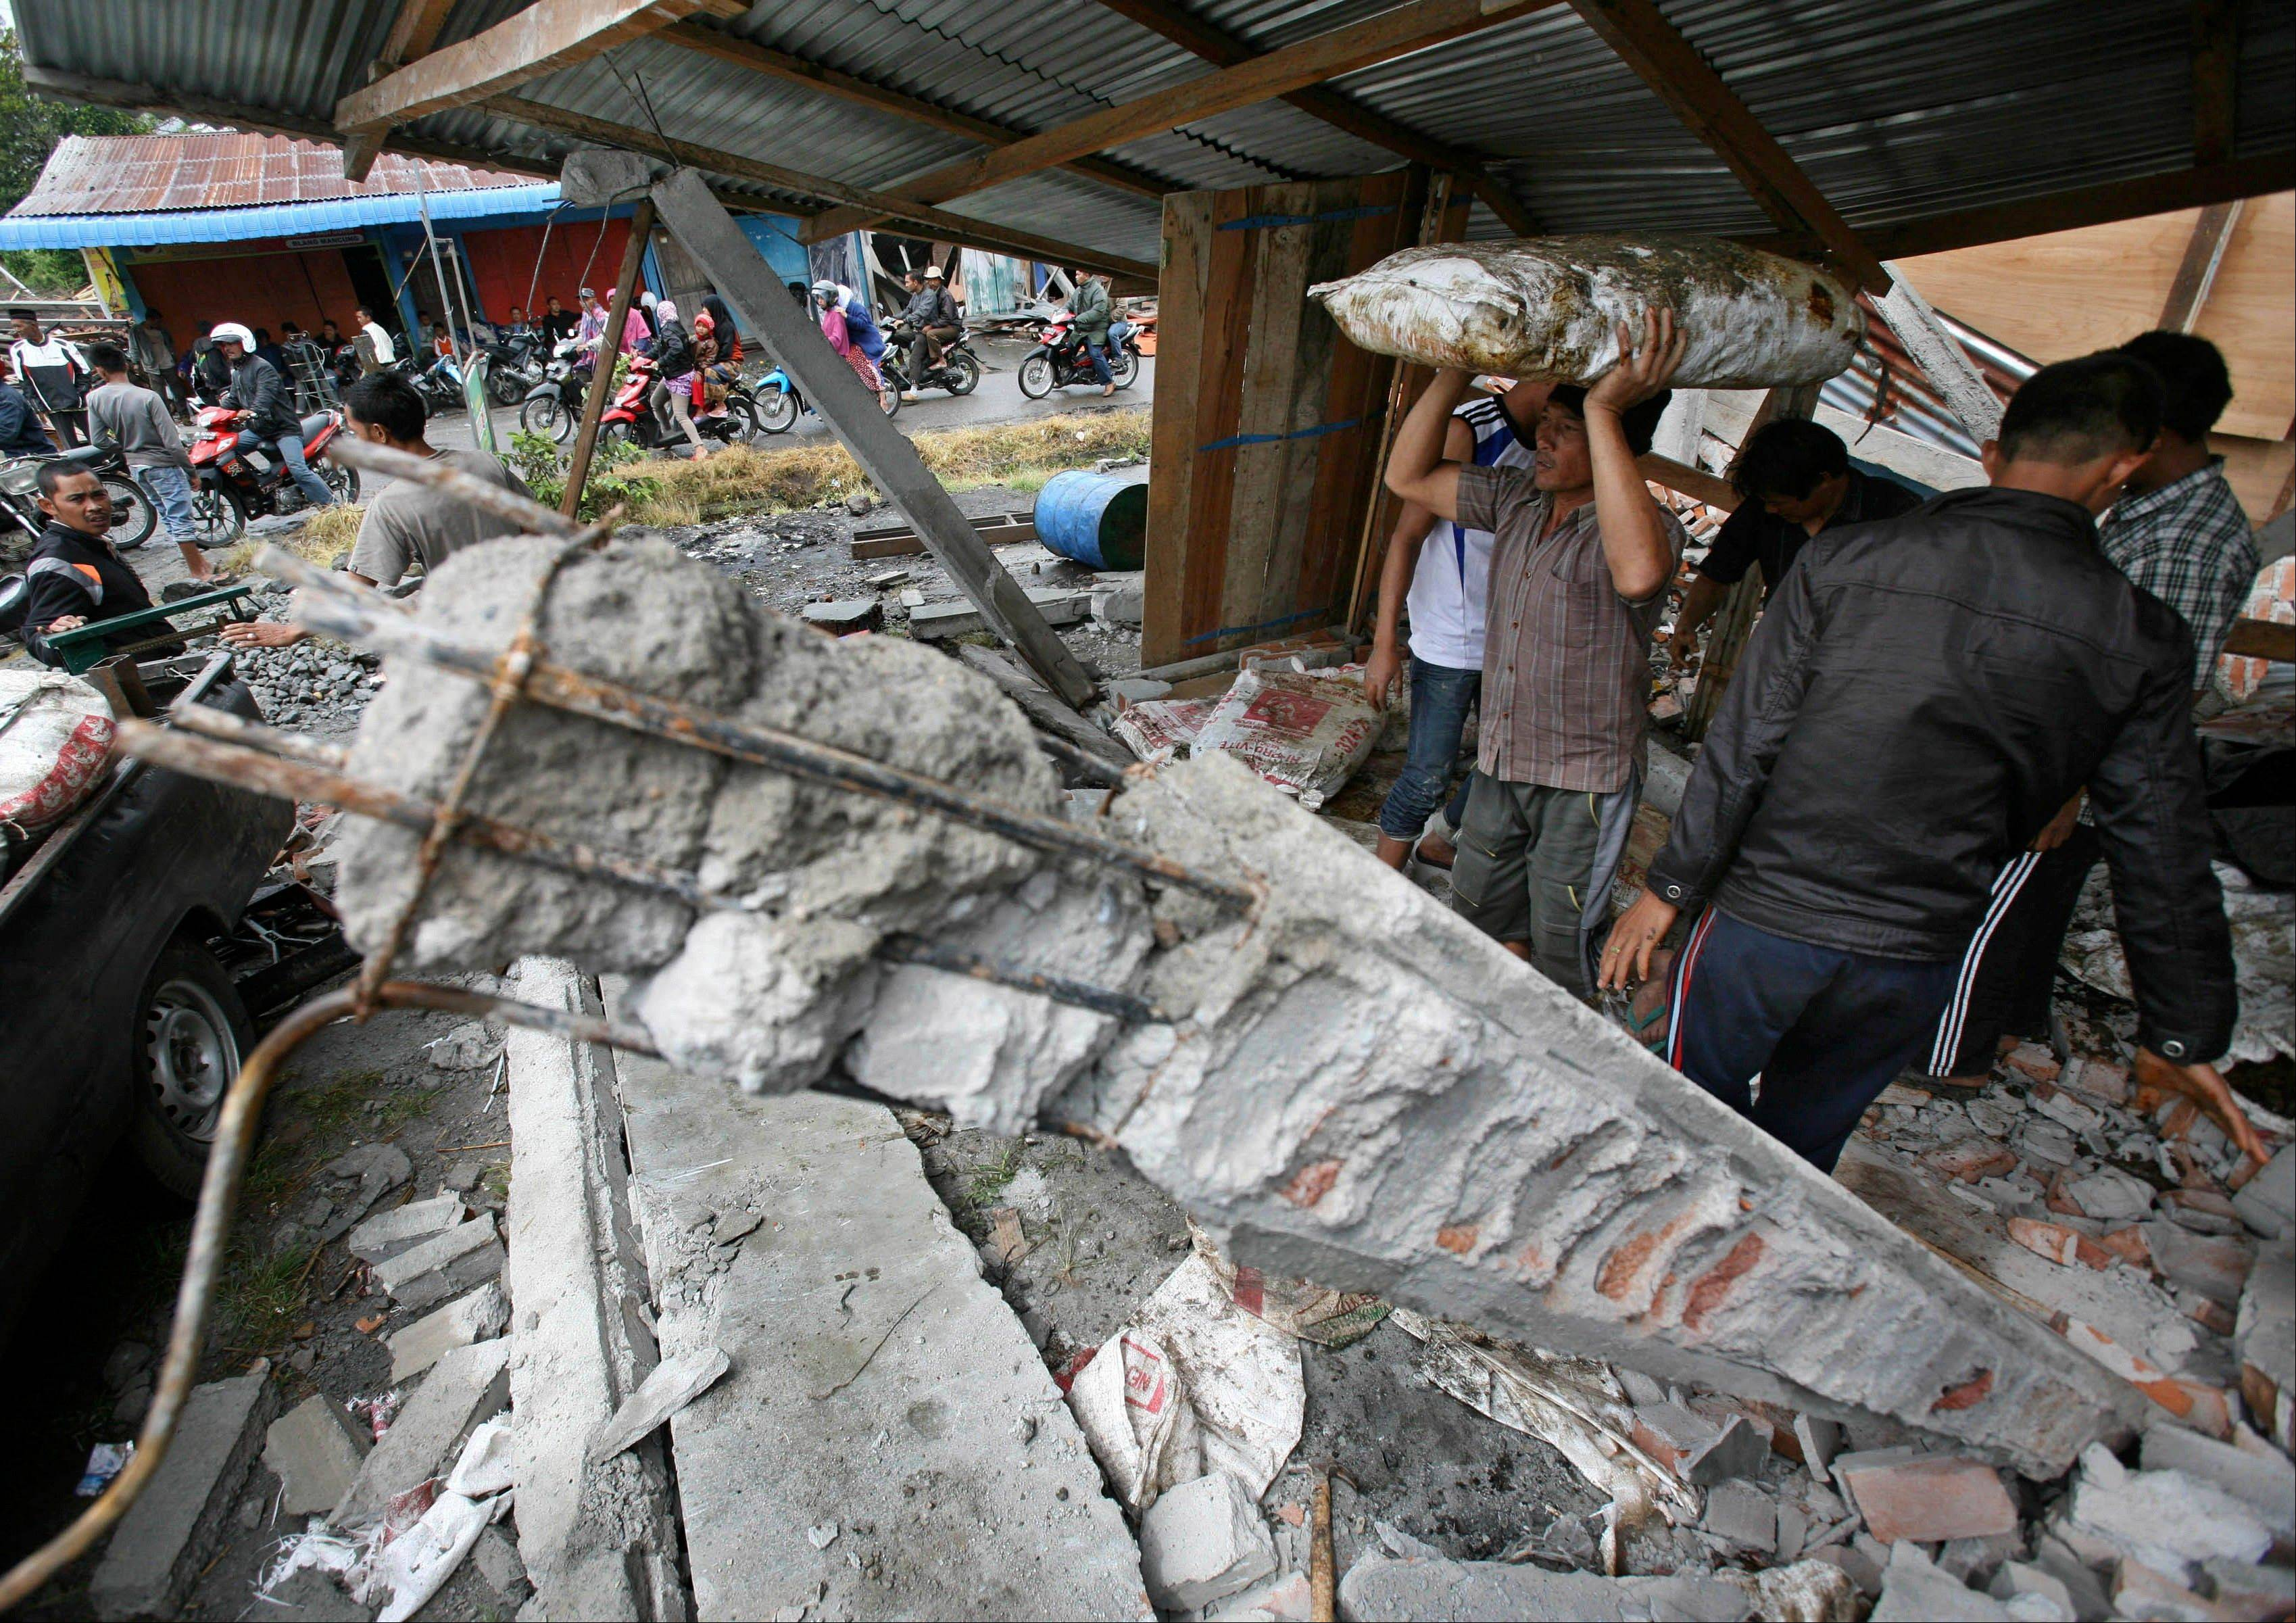 An Acehnese man carries a sack of rice he salvaged from a shop destroyed by Tuesday's earthquake at a market in Blang Mancung, Aceh province, Indonesia, Thursday, July 4, 2013. The death toll from an earthquake that hit Indonesia's Aceh province earlier this week has reached 30, and police and soldiers are searching the debris for another 12 people believed missing, officials said Thursday.